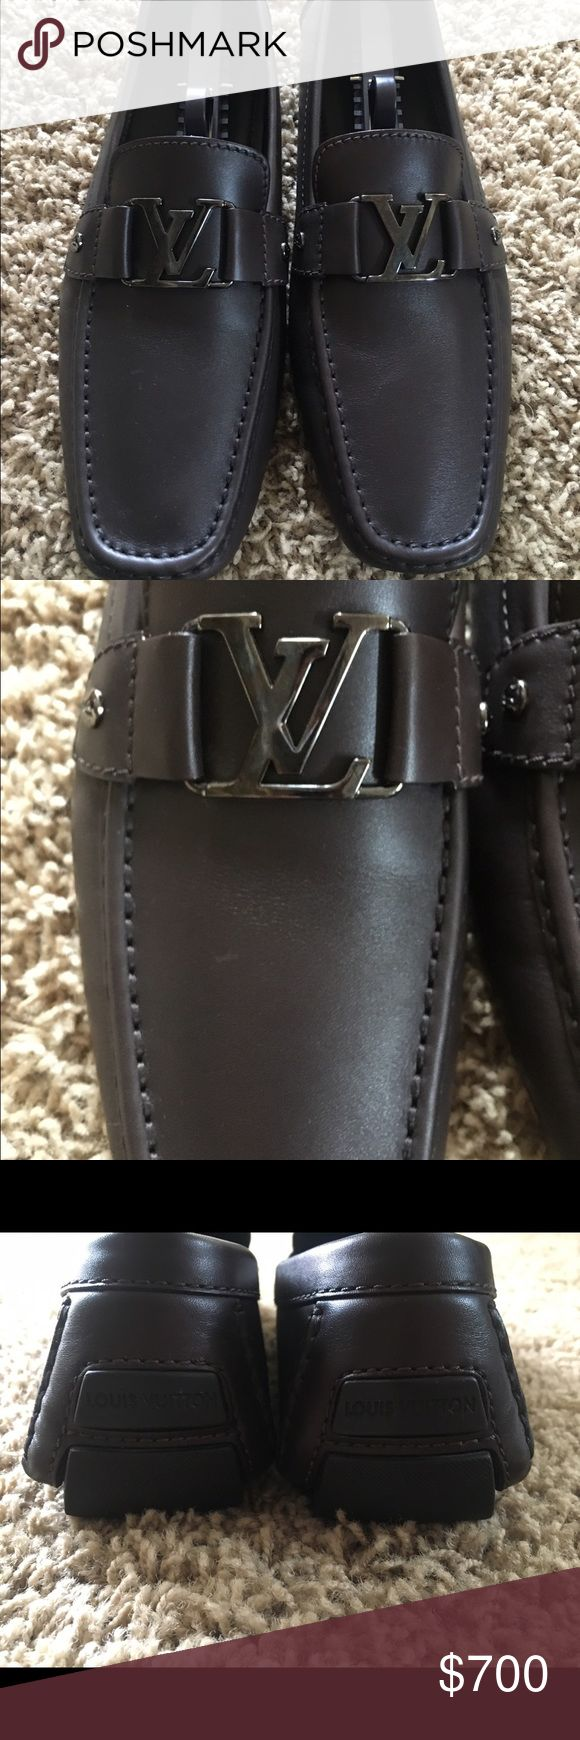 Louis Vuitton Men's Leather Loafers Brown